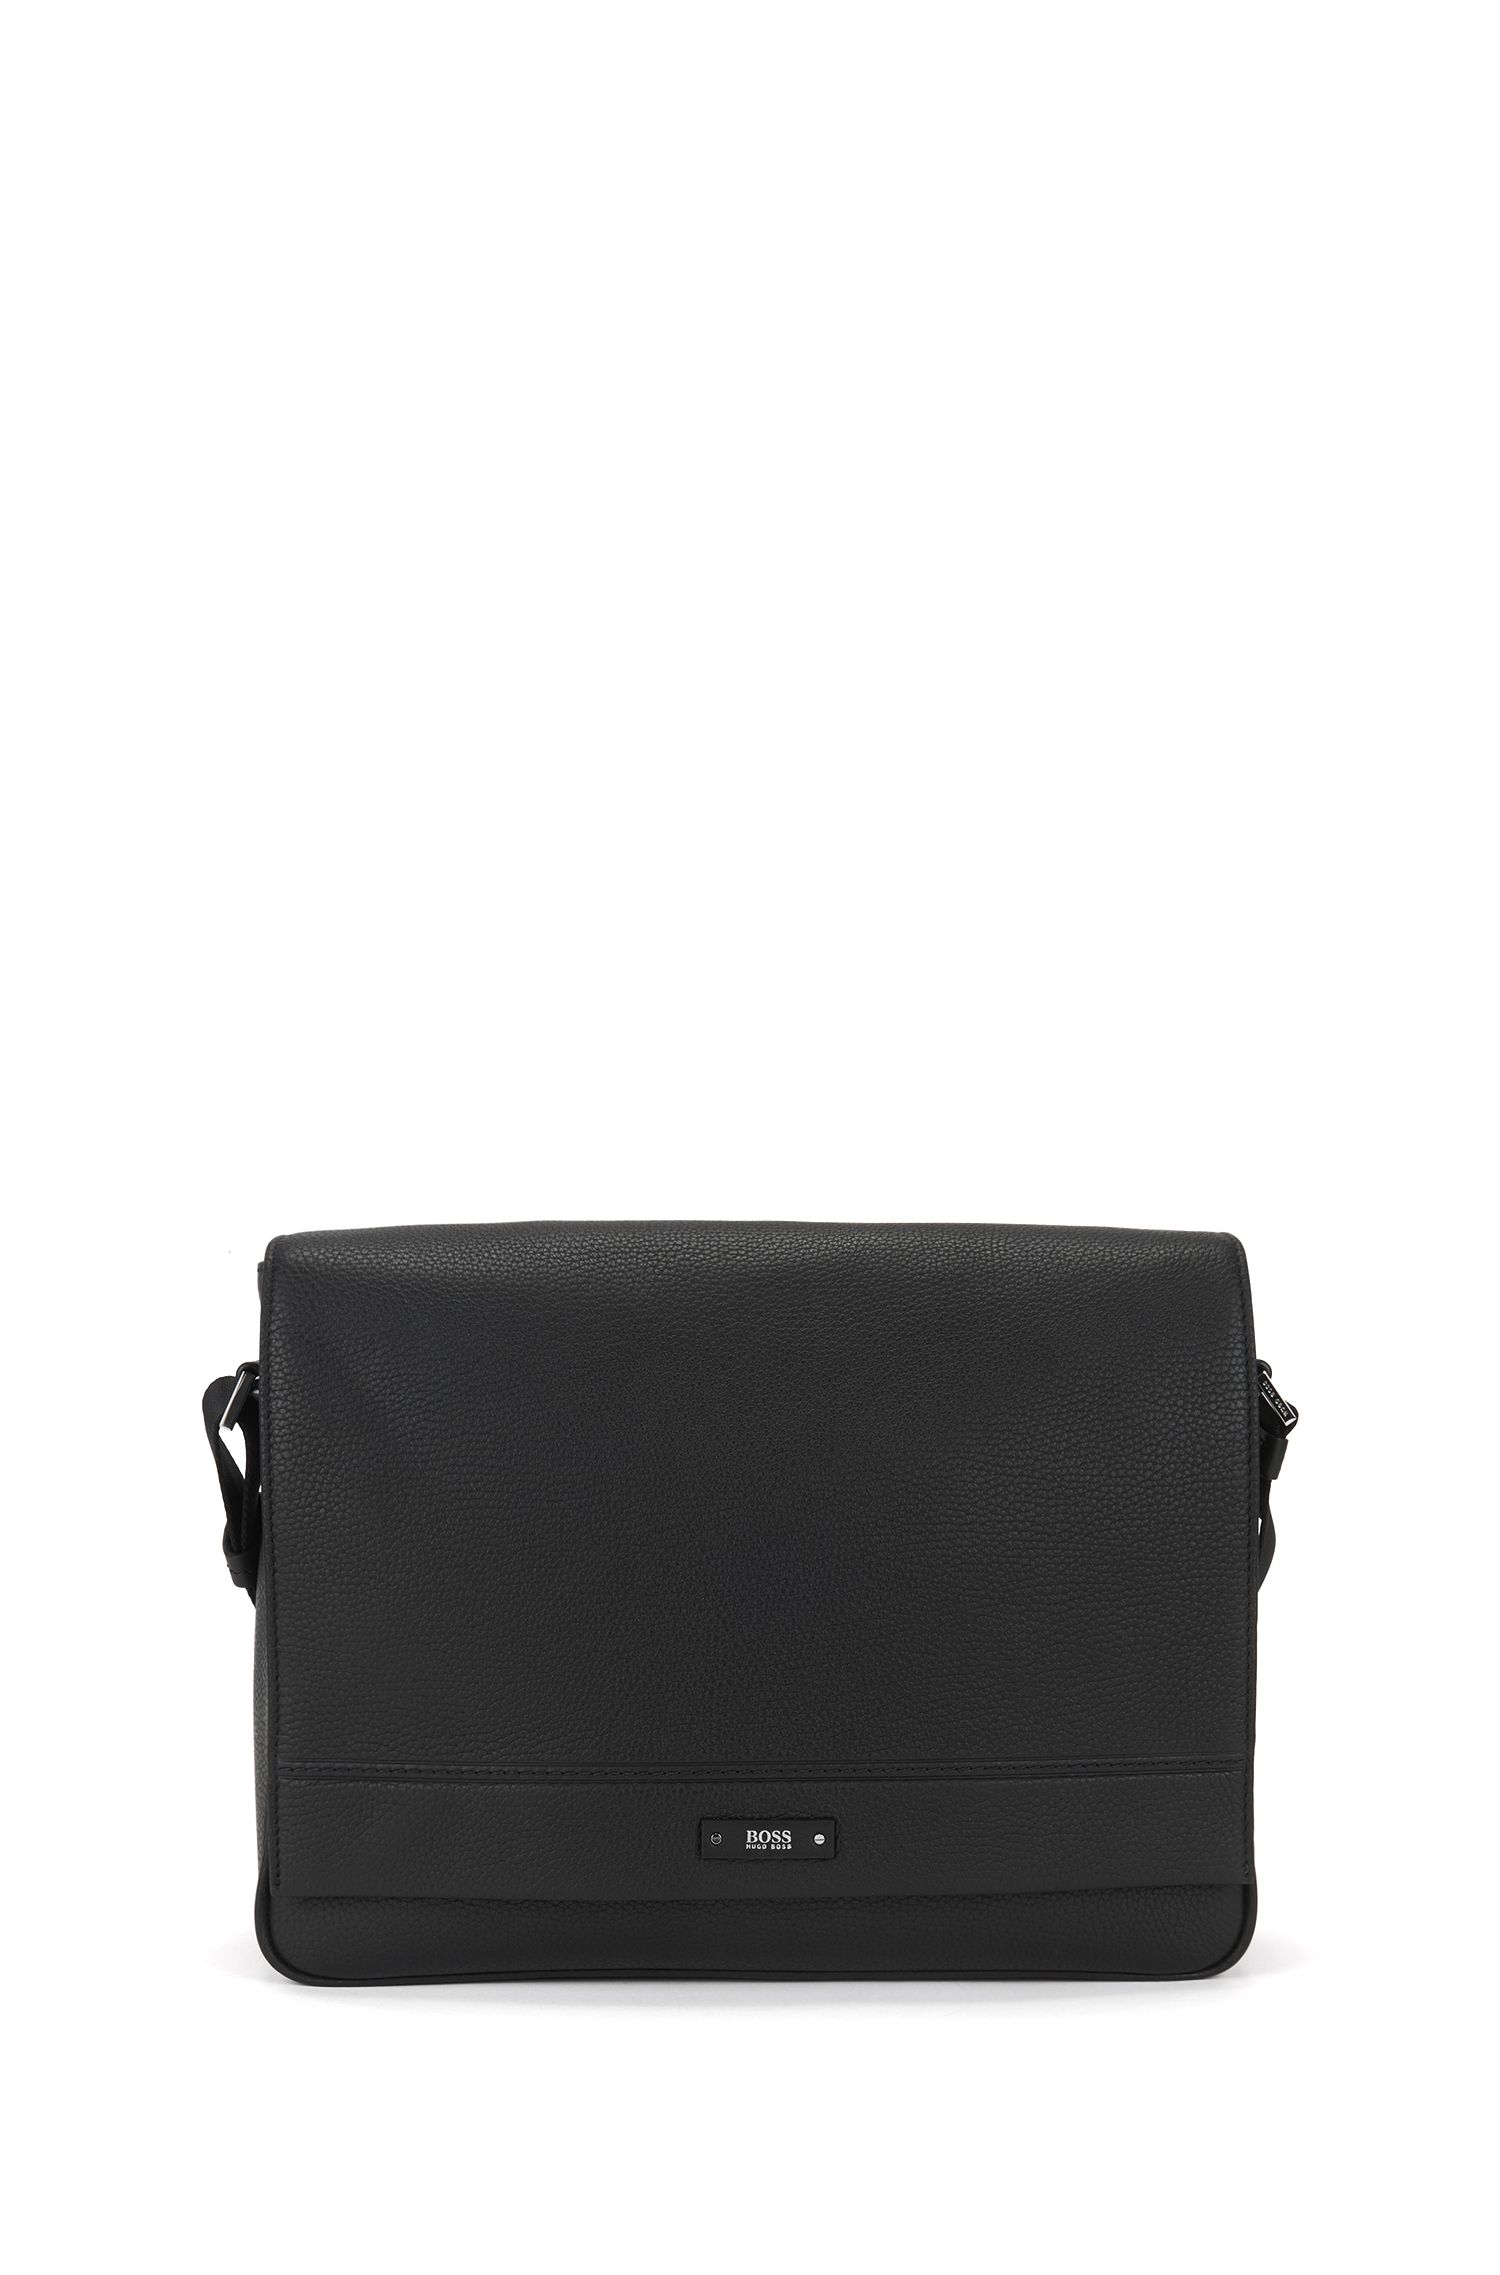 Travel Line Messenger Bag aus genarbtem Leder